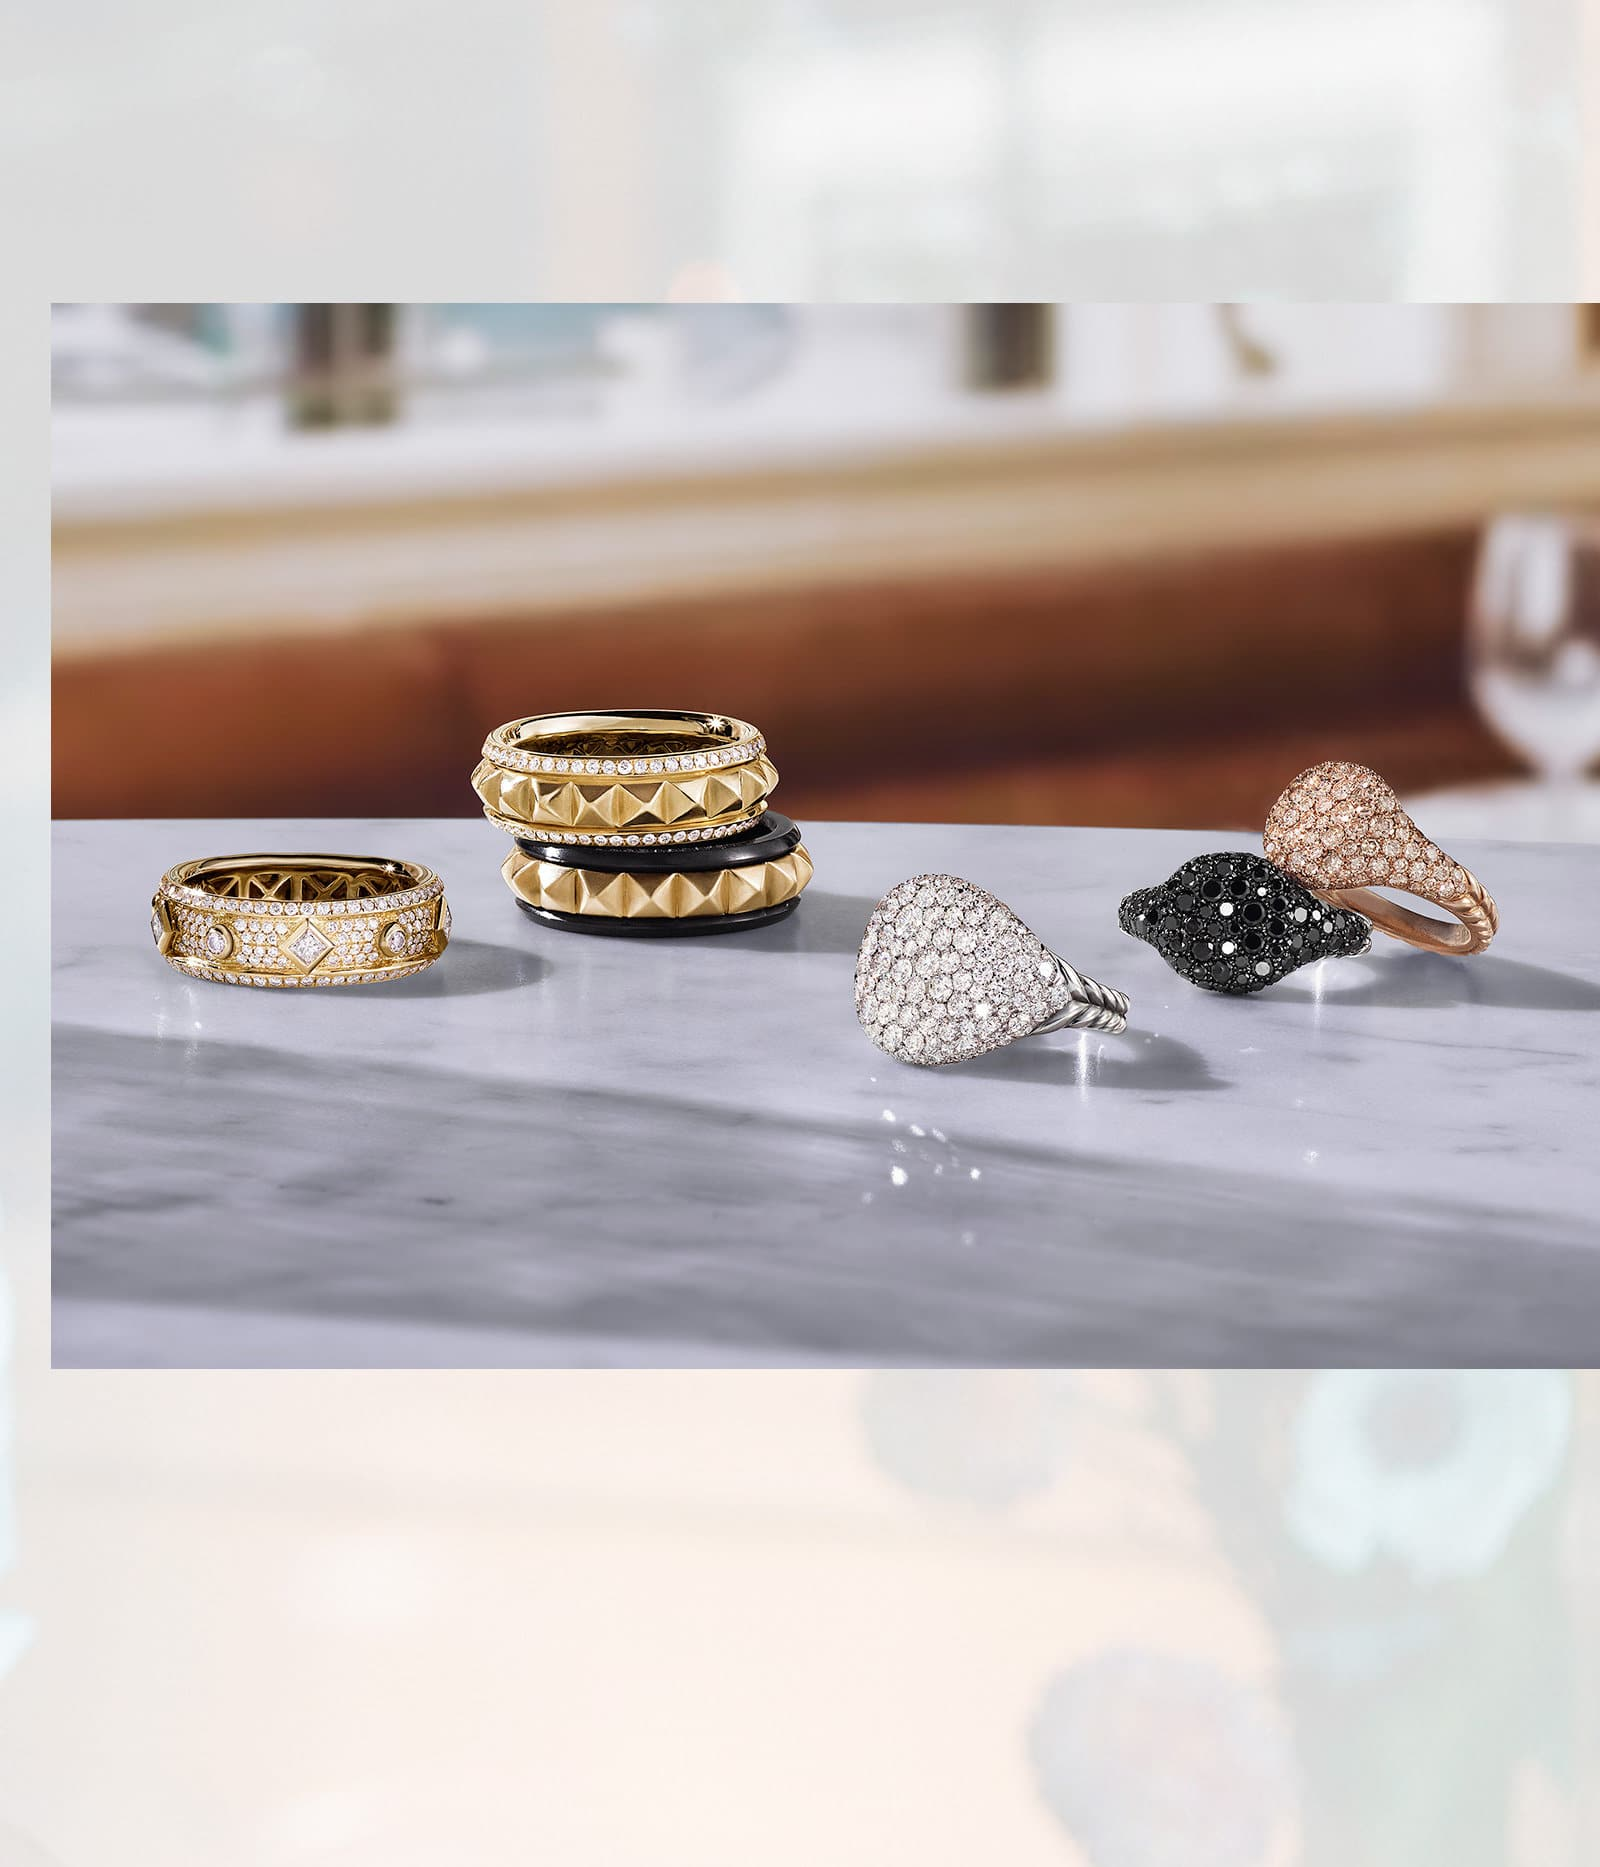 An image of three Renaissance band rings and three pinky rings scattered on a marble table. The jewelry is crafted from 18K yellow, white or rose gold with white, cognac, grey or black diamonds.